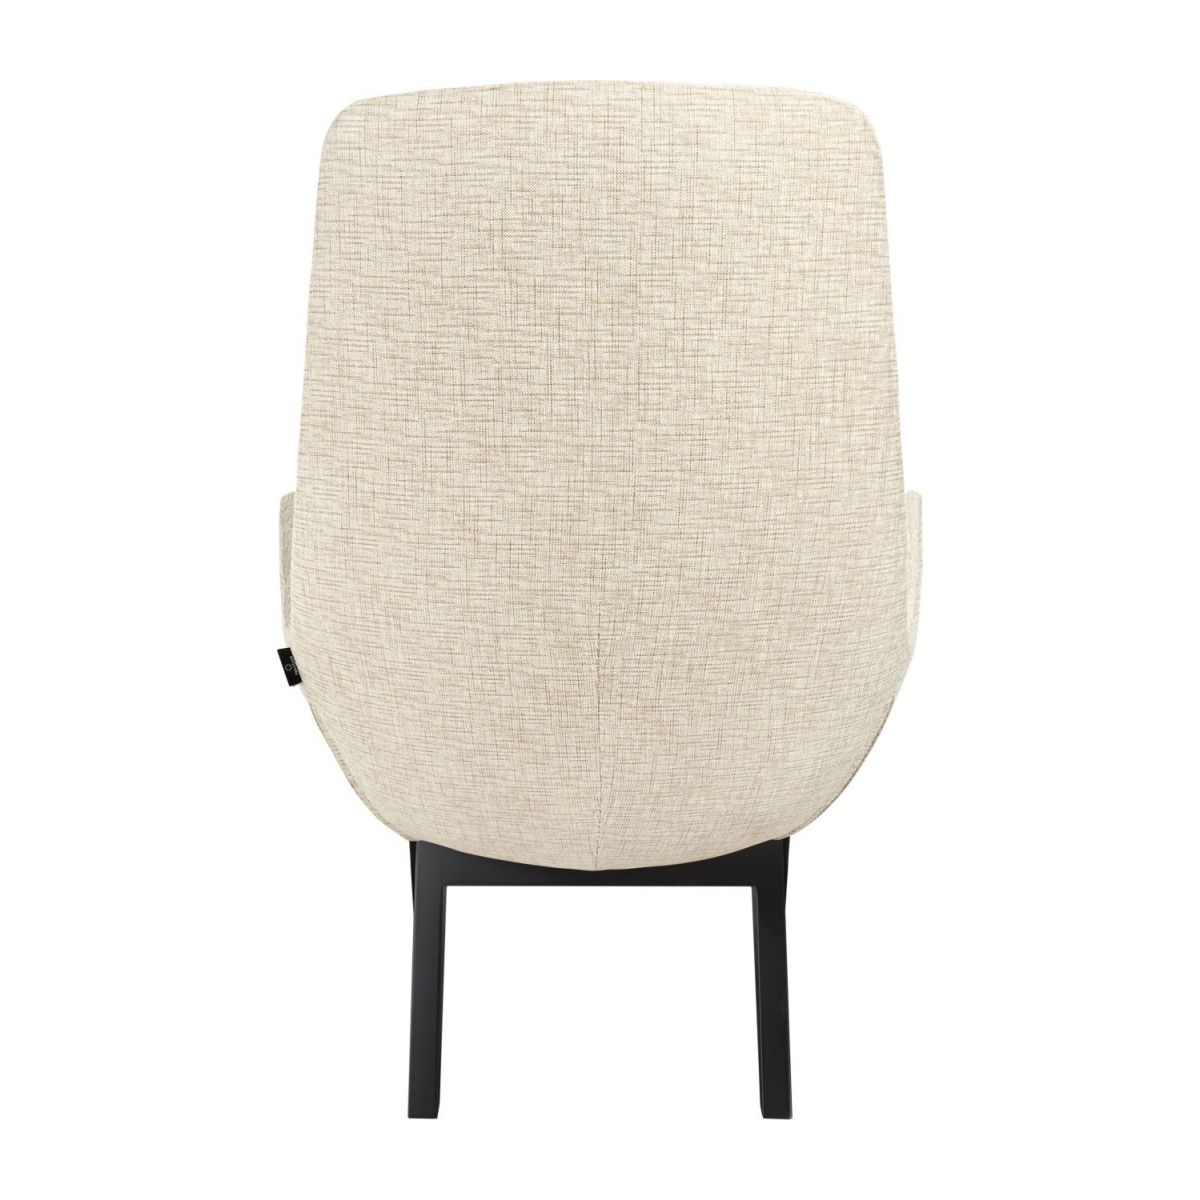 Armchair in Ancio fabric, nature with dark oak legs n°5